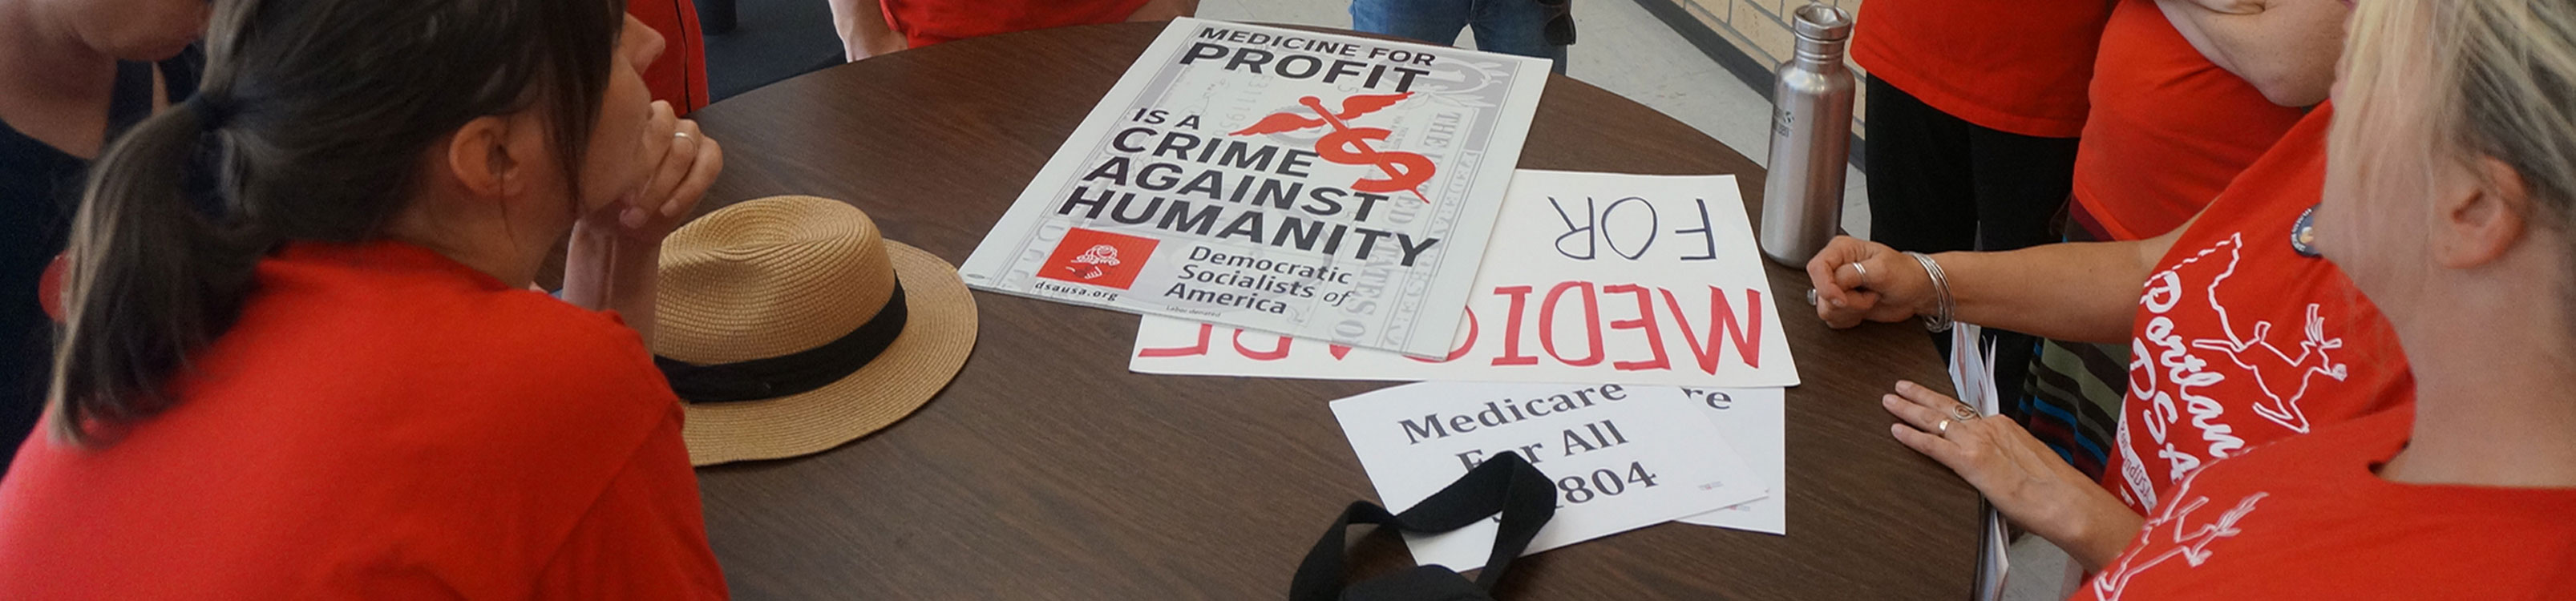 Medicare for All posters on a table, while a meeting of activists occurs. All wearing Portland DSA shirts.